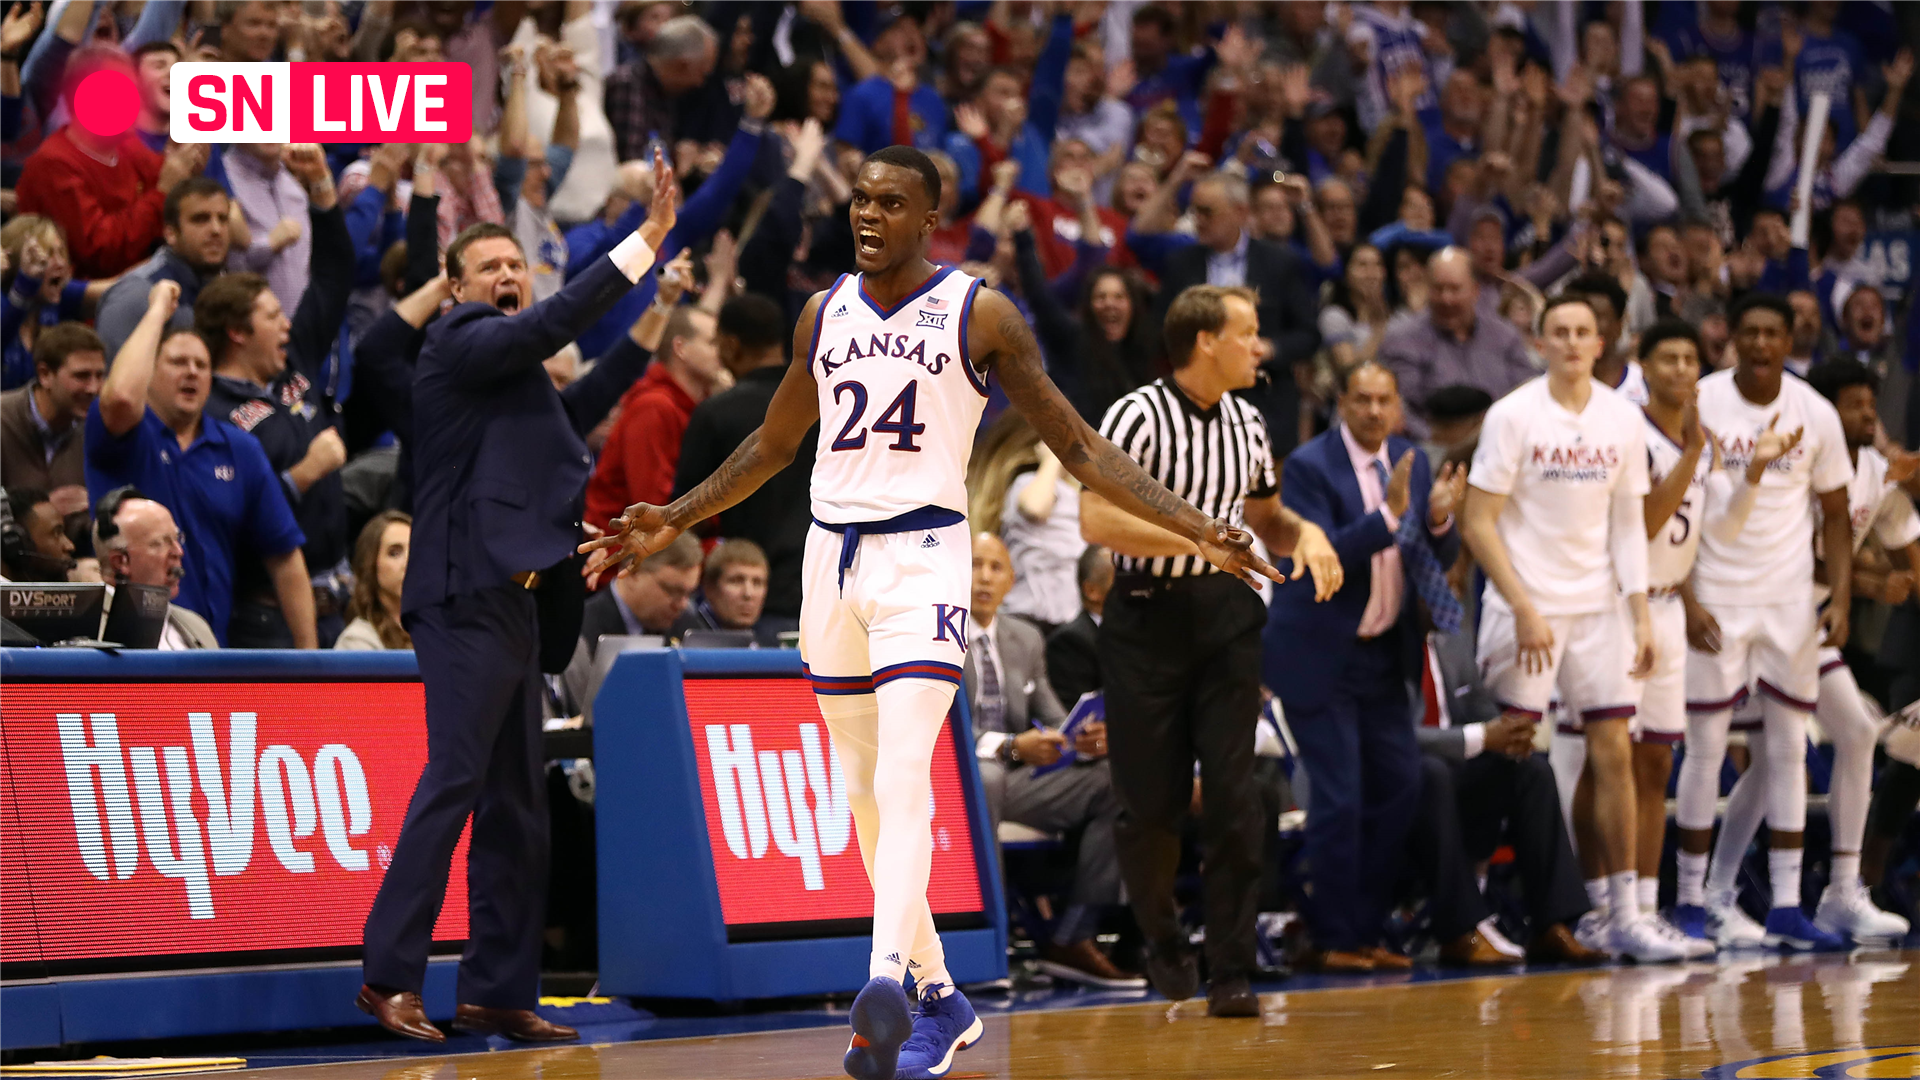 Kansas-jayhawks-live-blog-121518-getty-images-ps_kyfy70ifj3ch1aept70ebbdch